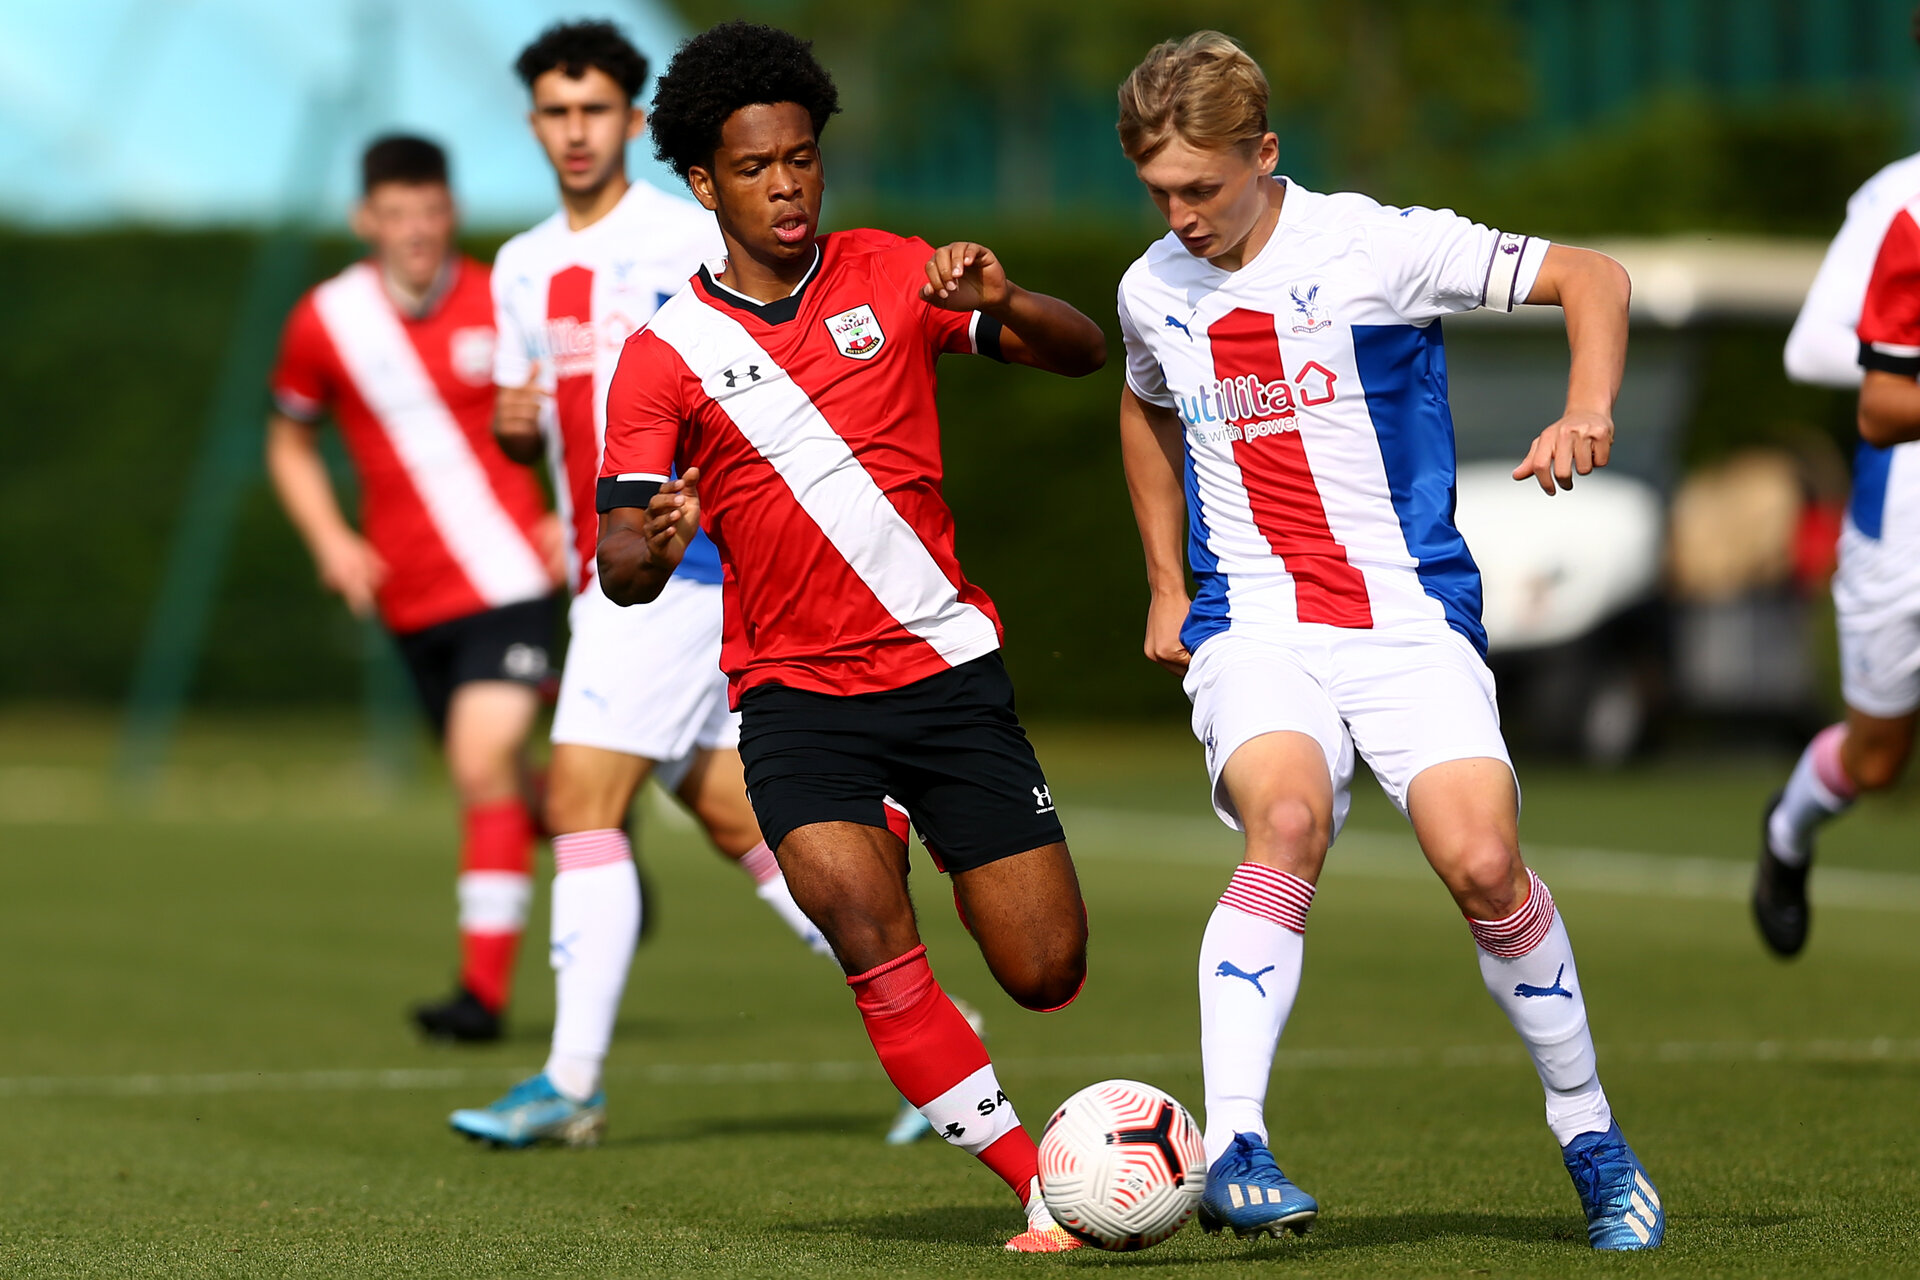 SOUTHAMPTON, ENGLAND - SEPTEMBER 19: Diamond Edwards (L) of Southampton during the Premier League U18 match between Southampton FC U18 and Crystal Palace FC at Staplewood Training Ground on September 19, 2020 in Southampton, England. (Photo by Isabelle Field/Southampton FC via Getty Images)